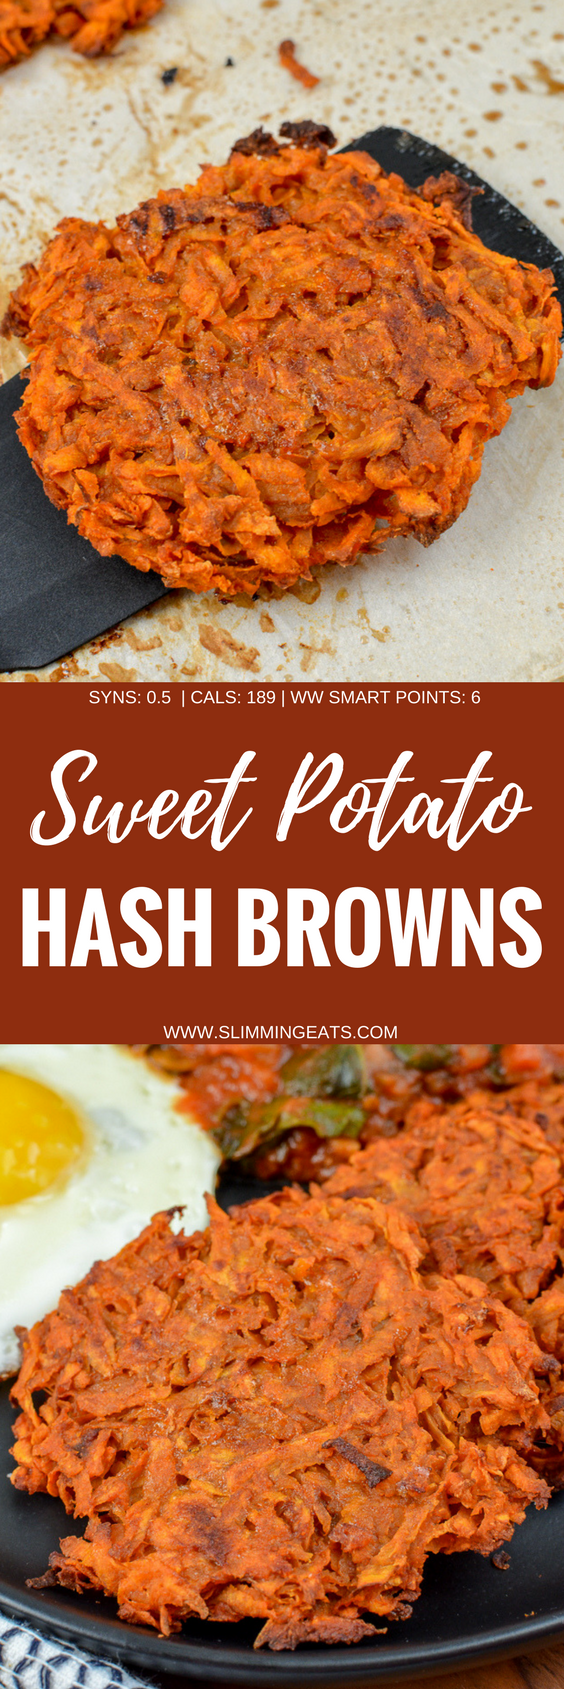 Oven Baked Sweet Potato Hash Browns | Slimming World